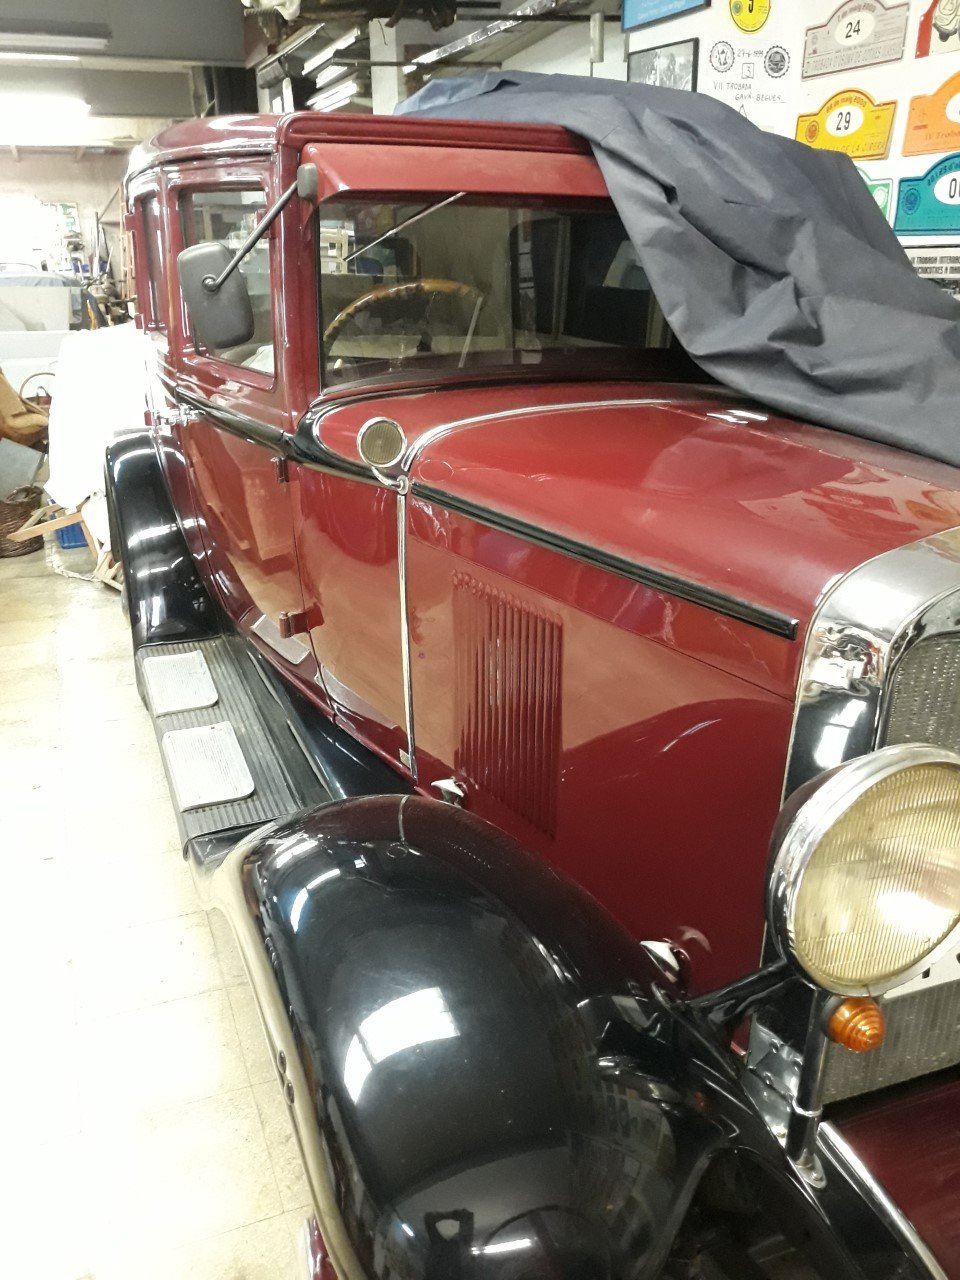 1929 RHD - Chevrolet sedan 4 doors 6 cylinder For Sale (picture 1 of 3)